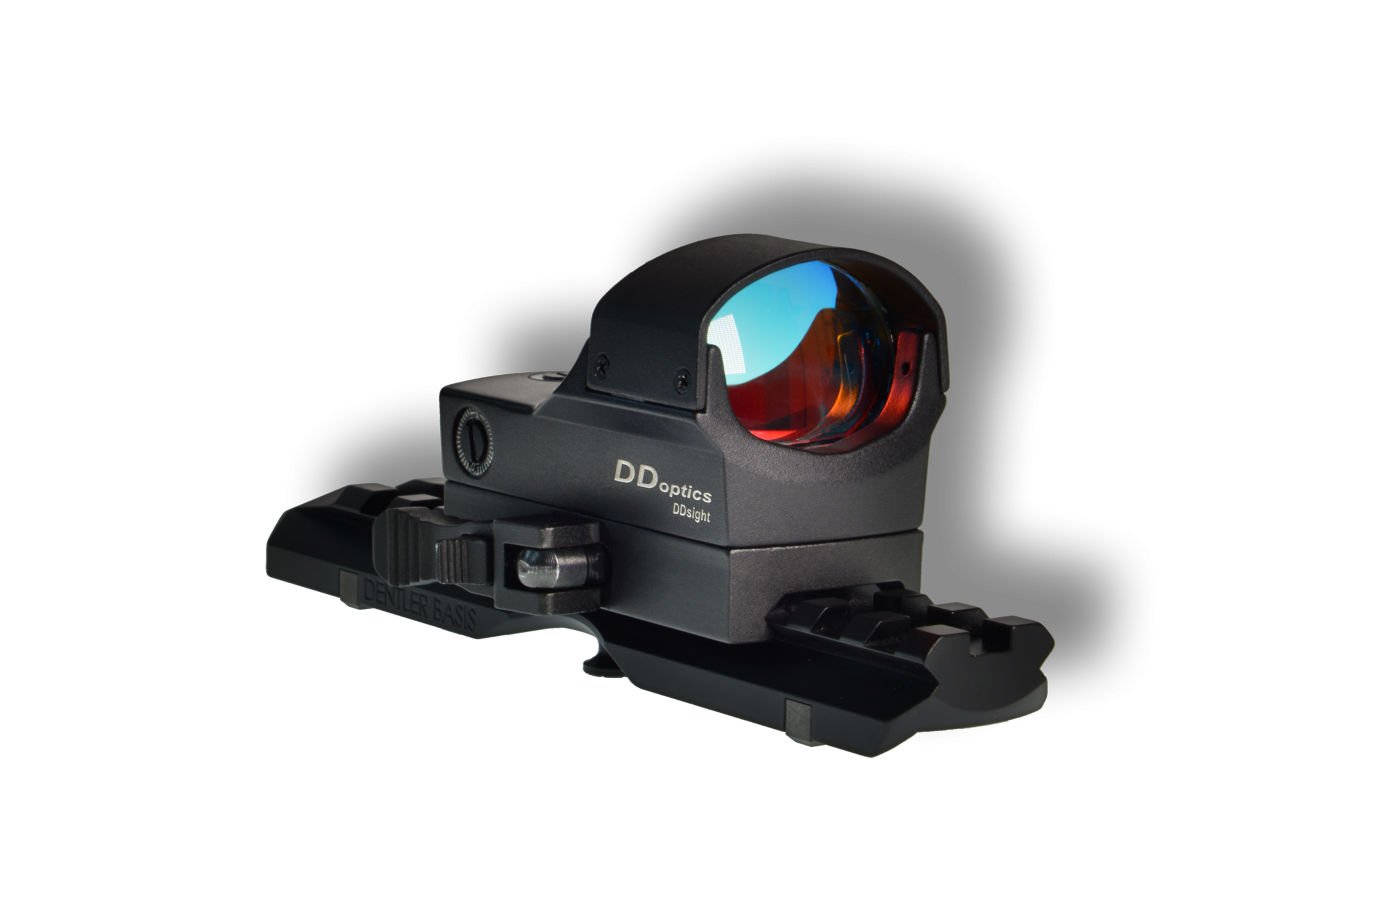 DDsight Red Dot Visier Gen. 3